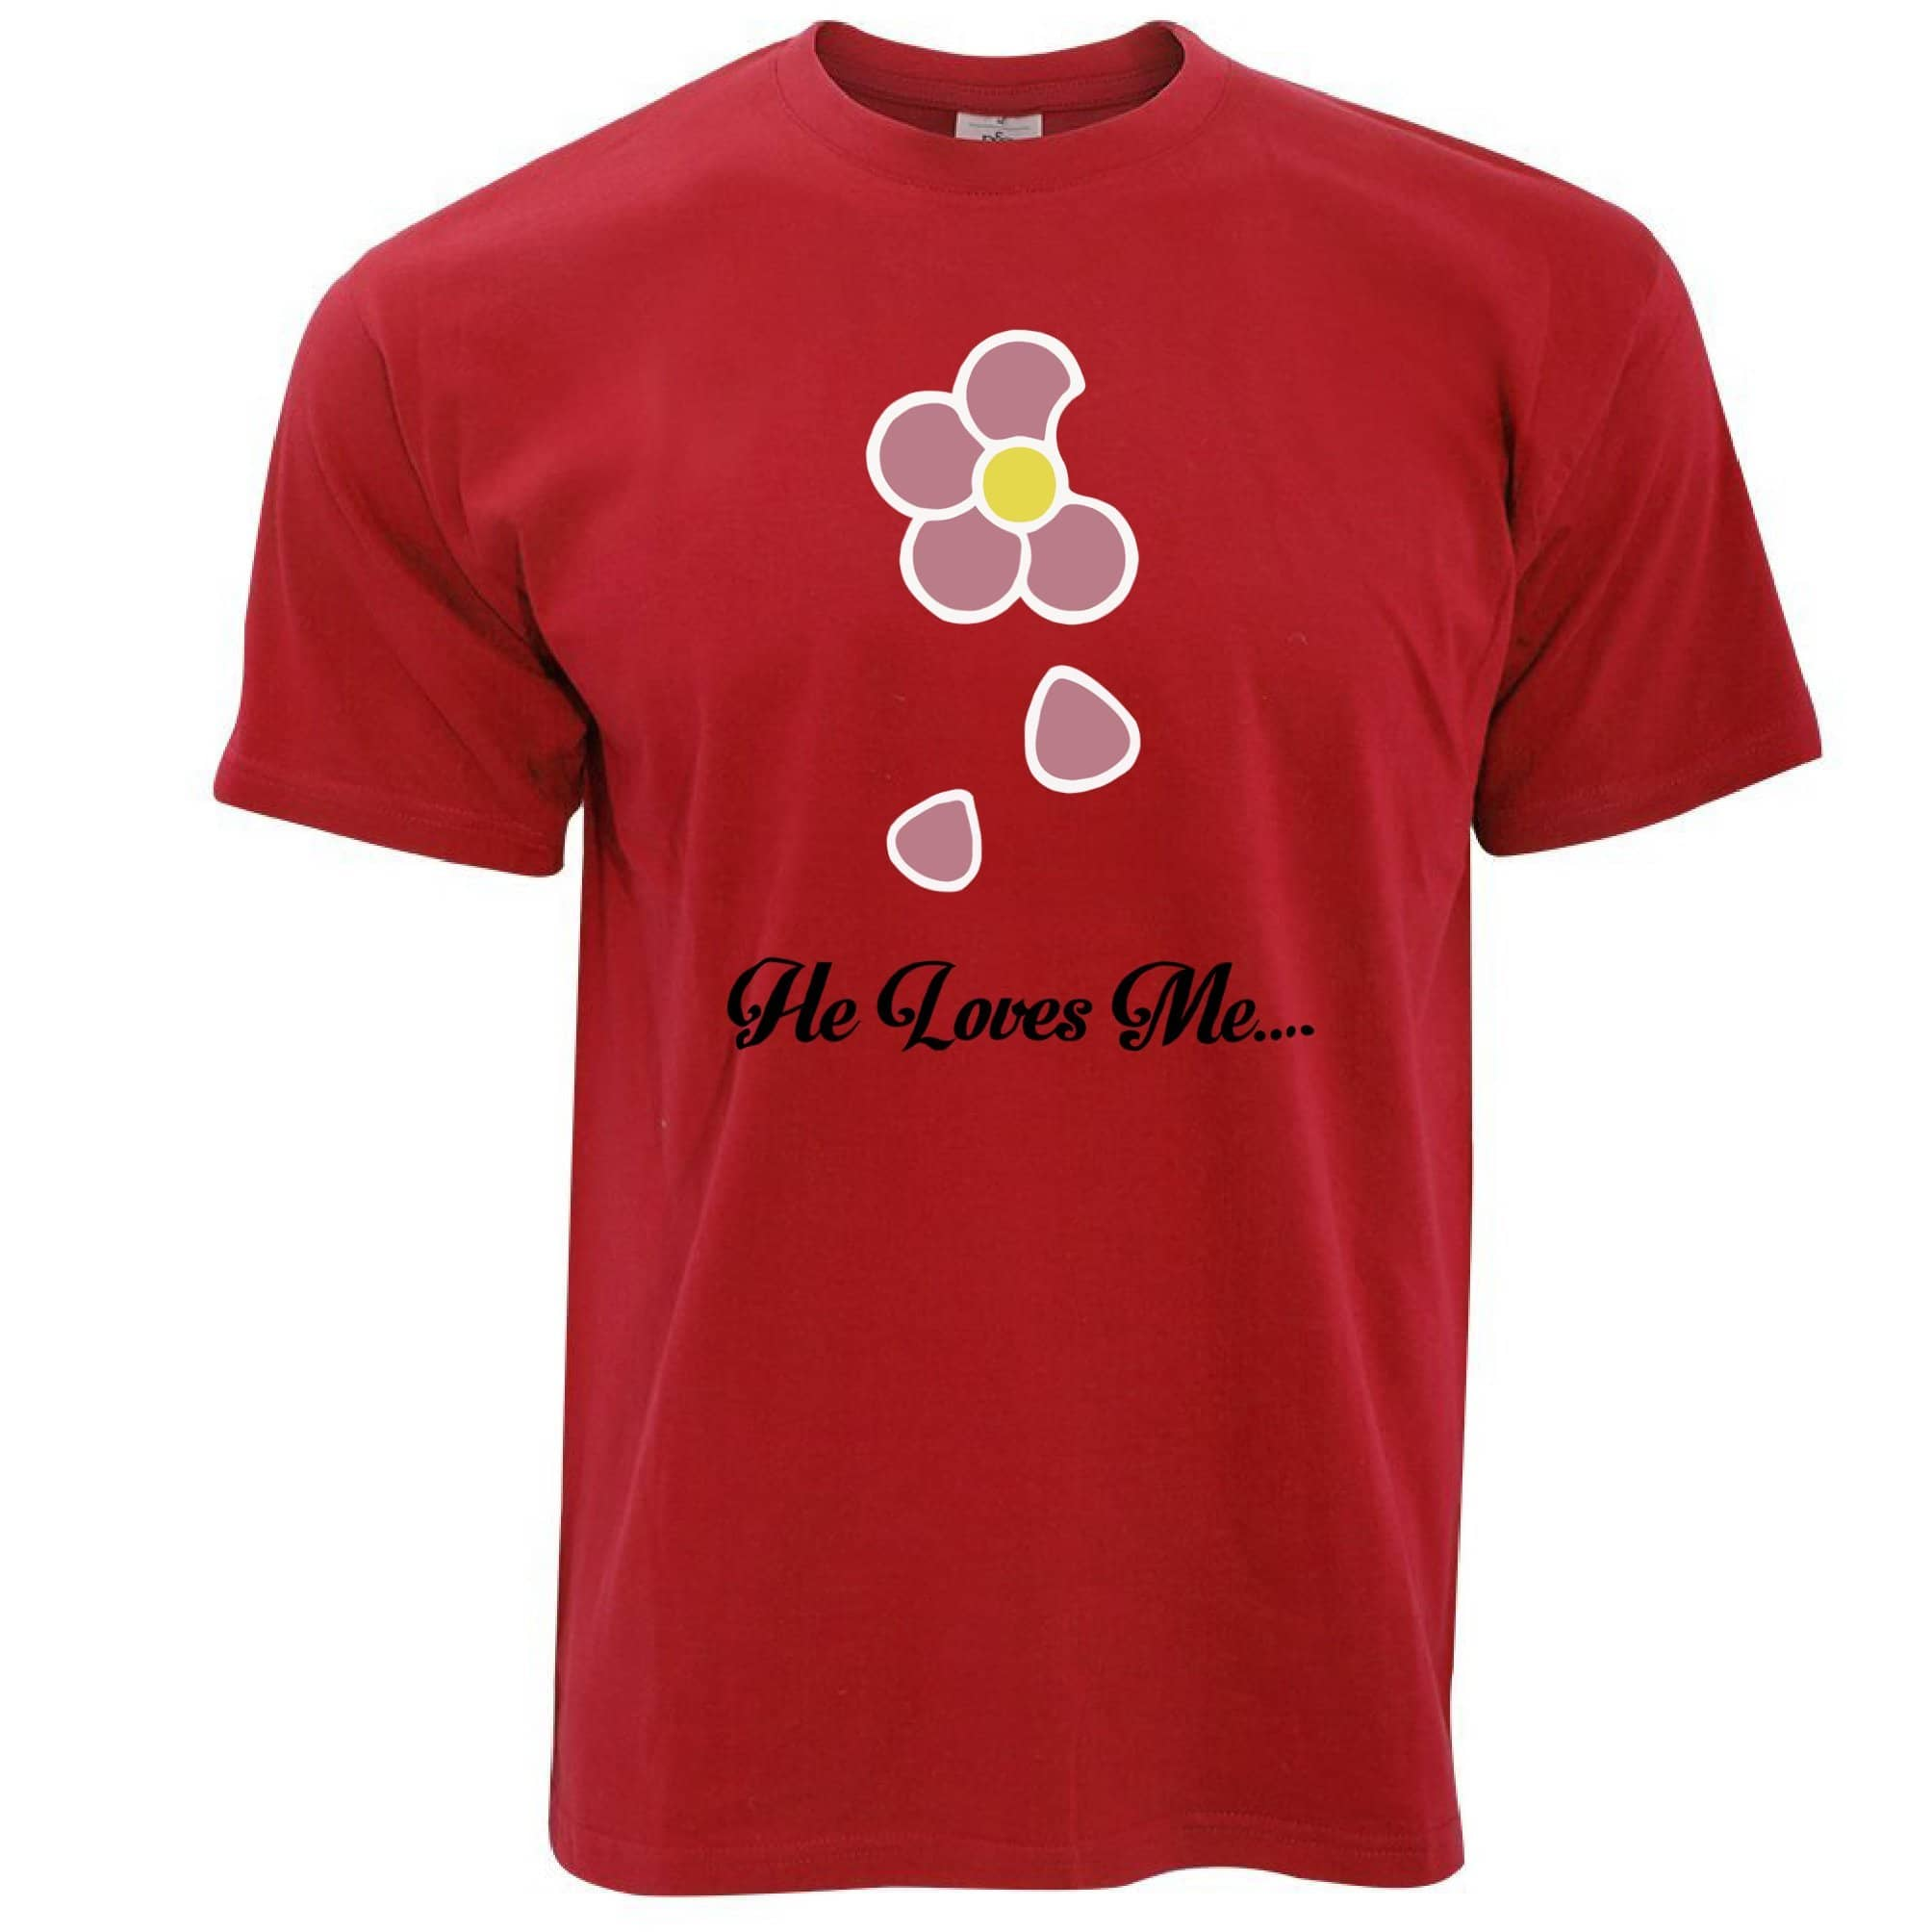 Cute Summer T Shirt He Loves Me... Flower Slogan